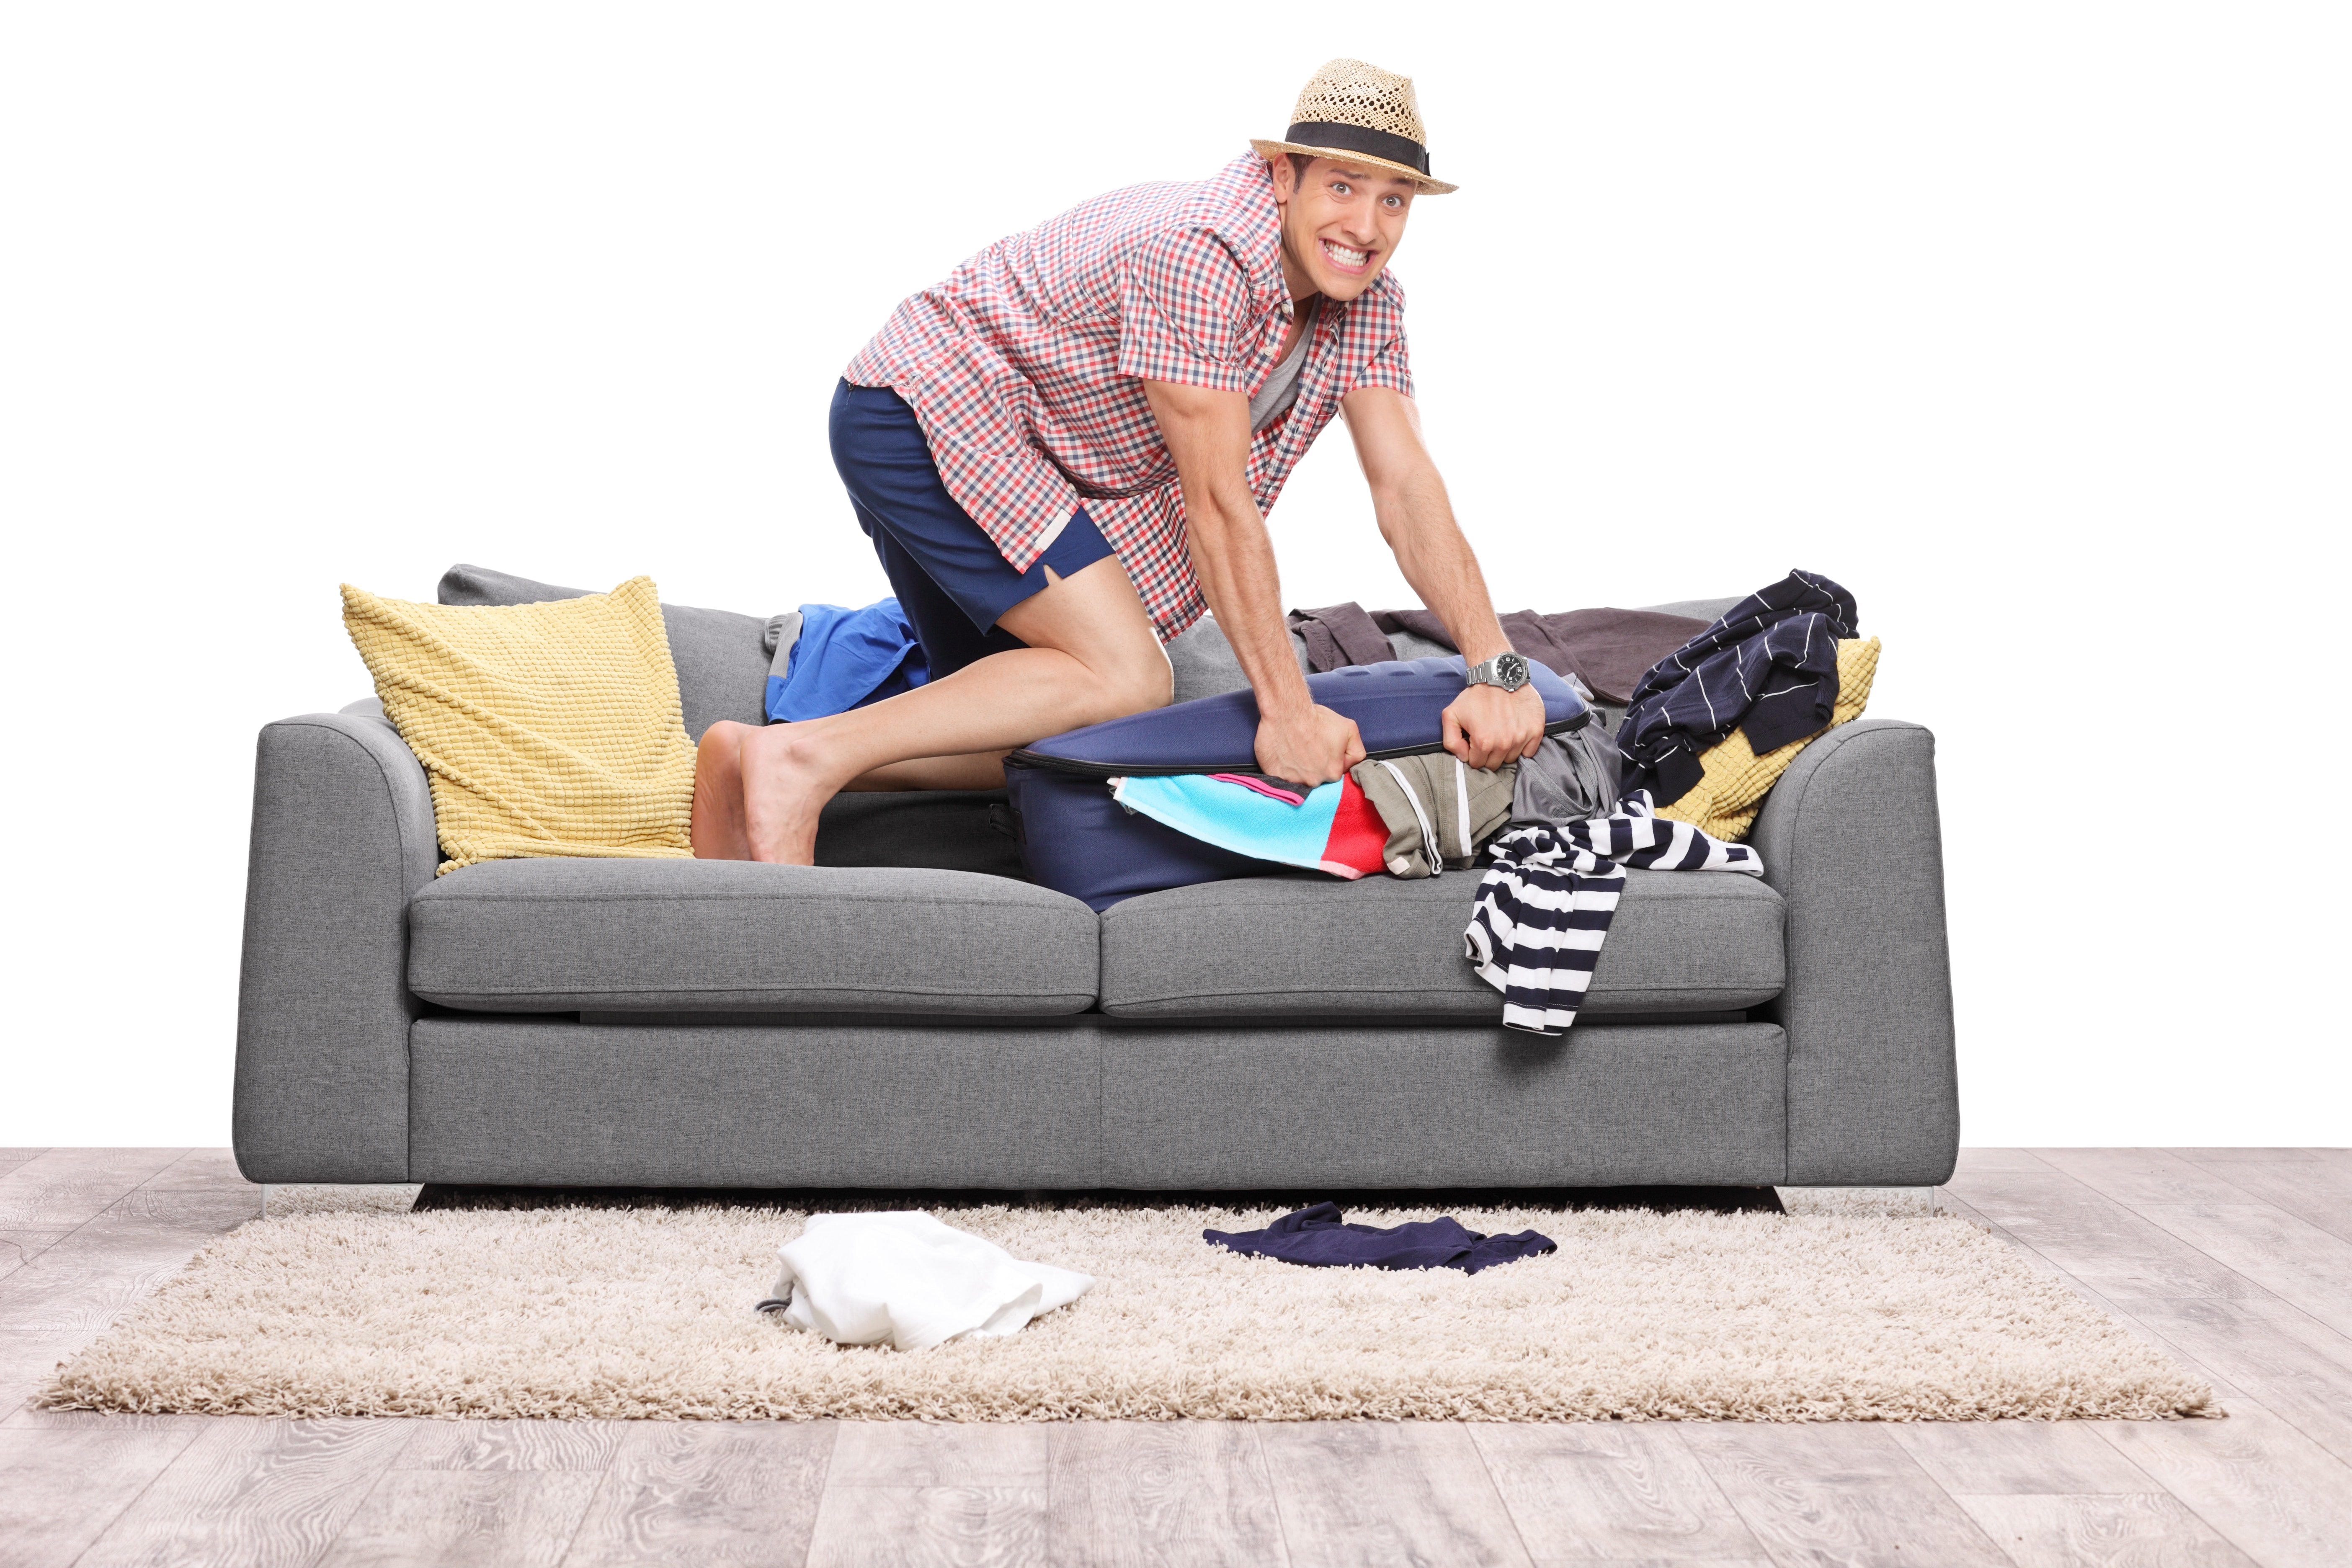 9 Packing Tips Every Man On the Go Should Know